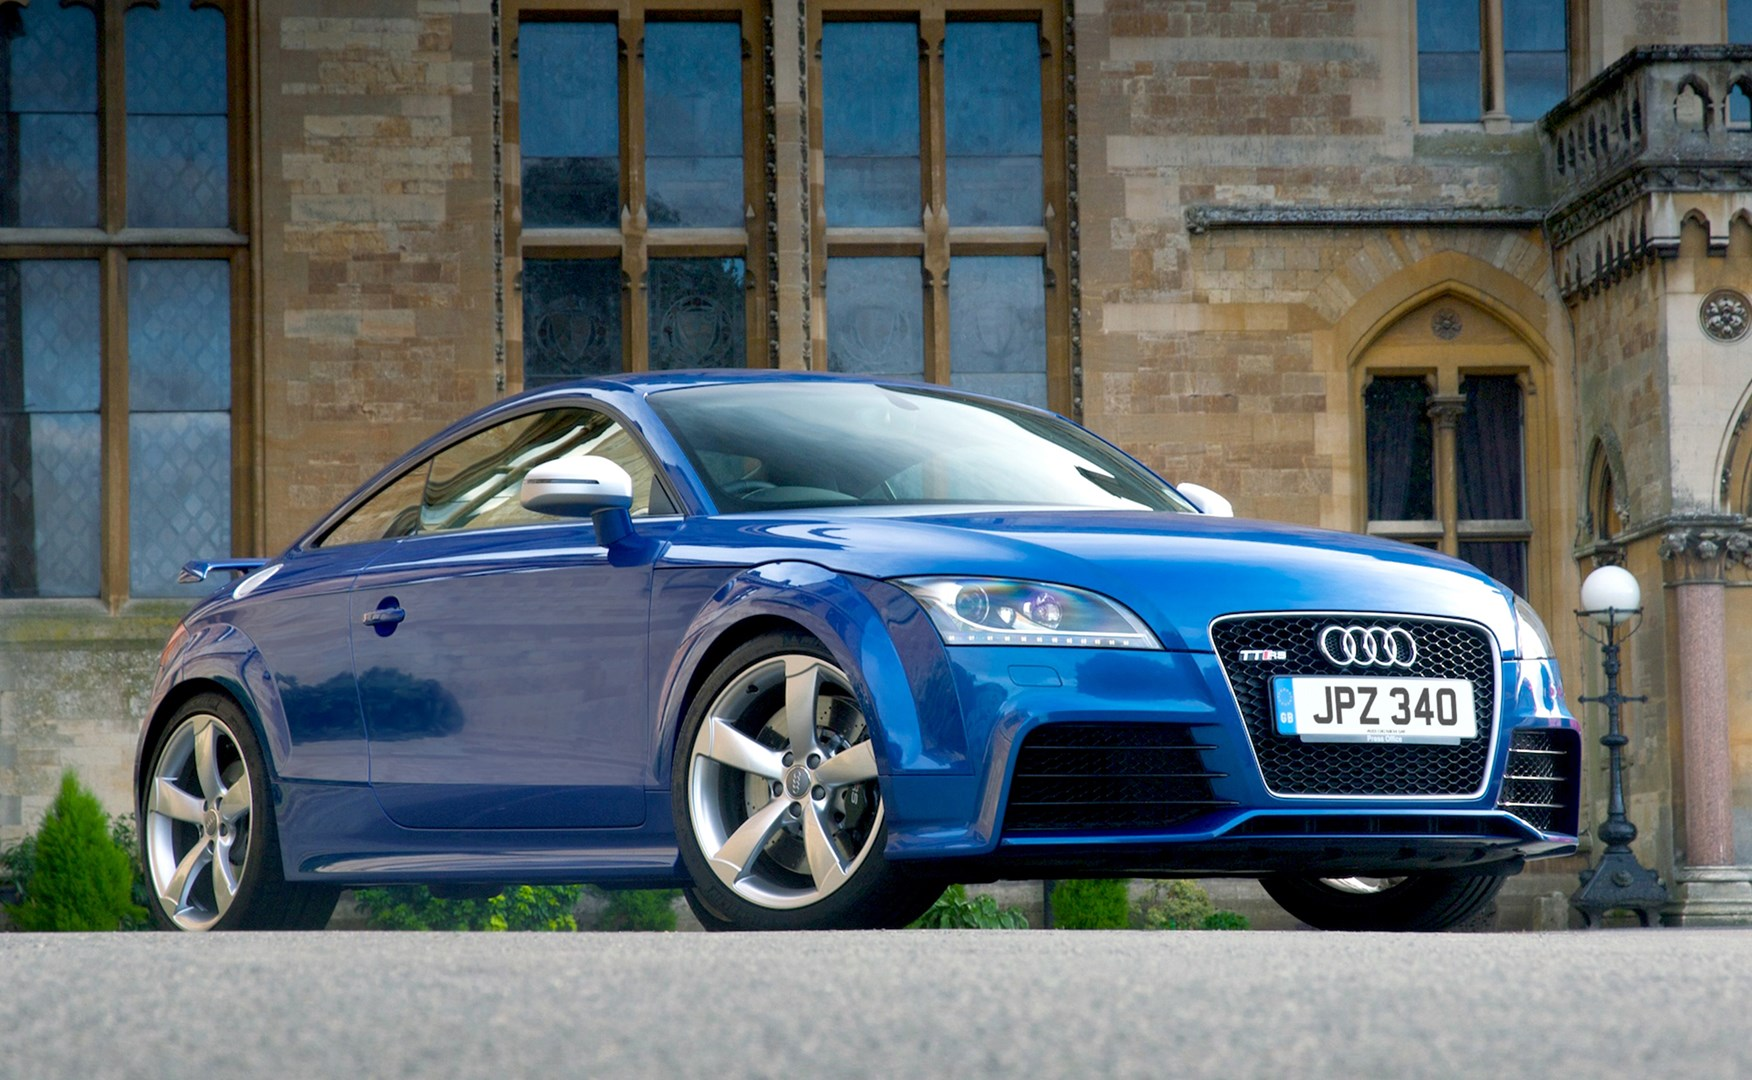 Used Audi TT RS (2009 - 2014) Review   Parkers